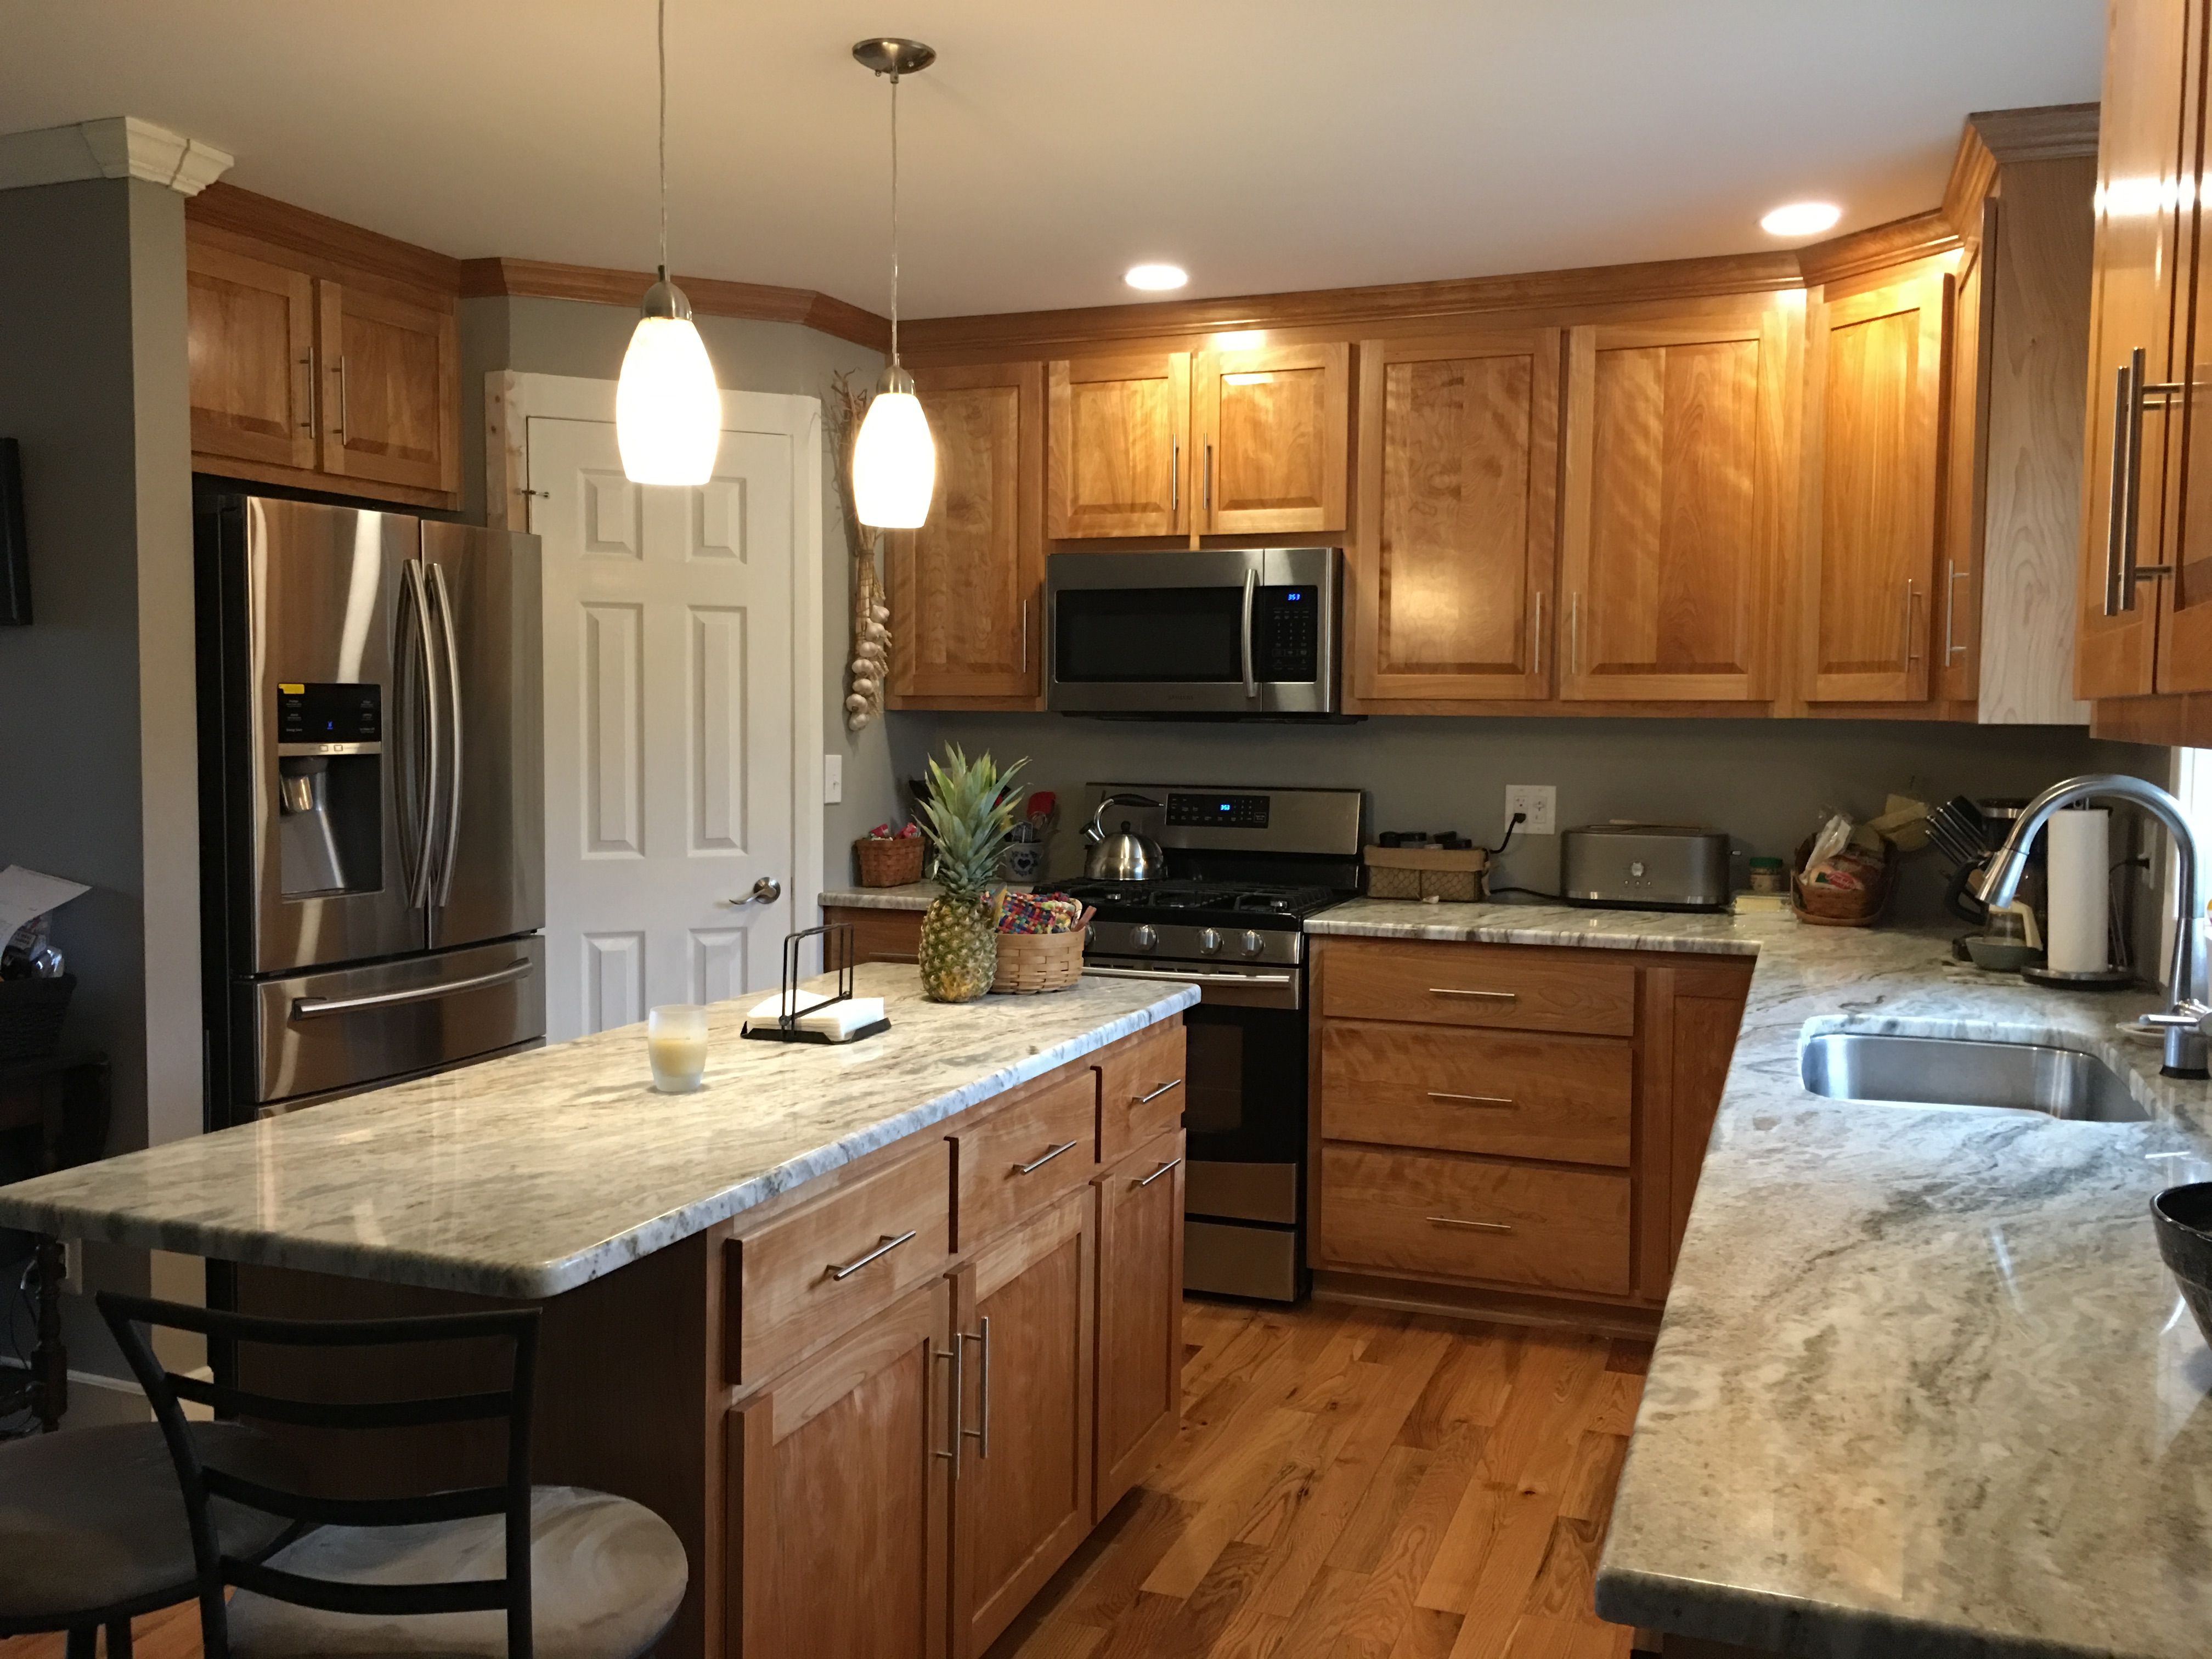 Red Birch Cabinets Diy Kitchen Remodel New Kitchen Cabinets Kitchen Cabinets